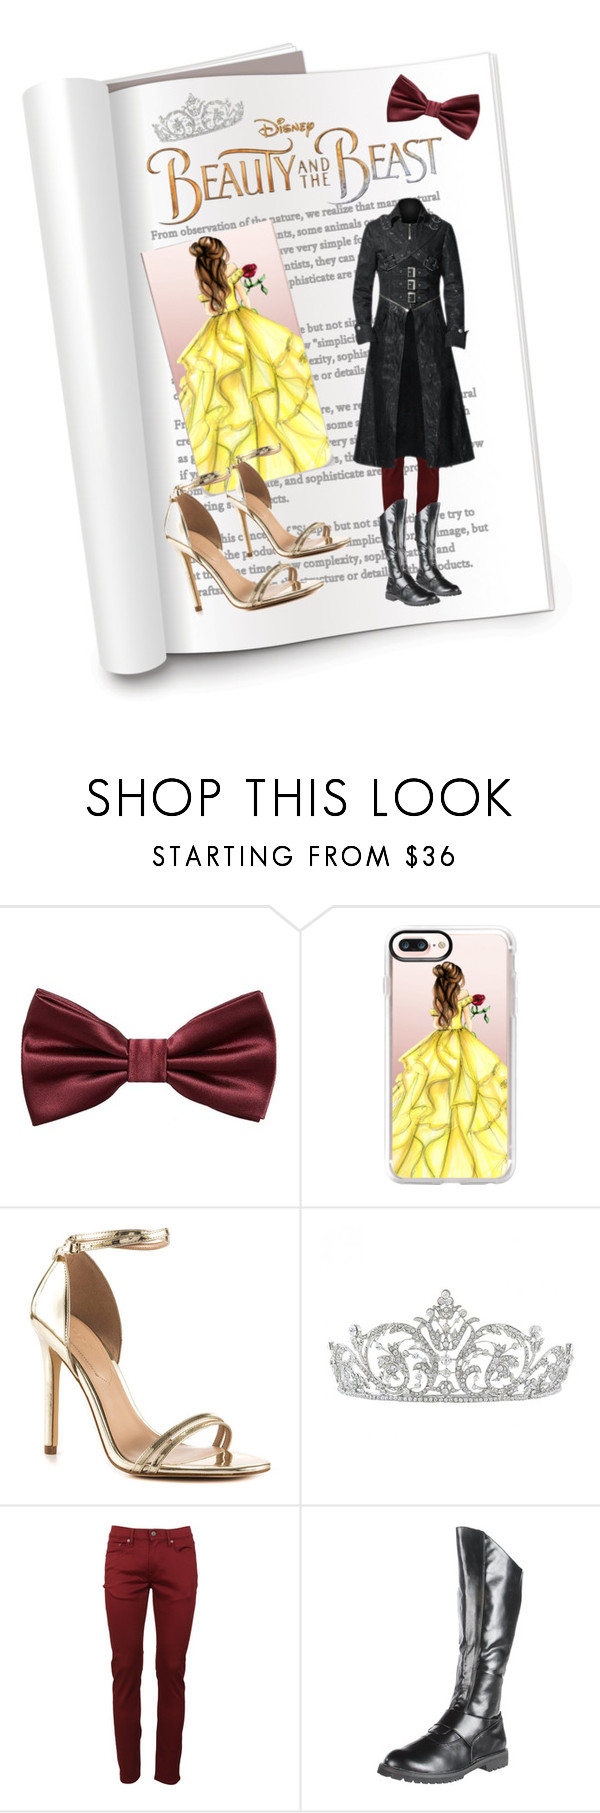 """""""B&tB"""" by ladytm87 ❤ liked on Polyvore featuring MANGO MAN, Casetify, ALDO, Disney, Burberry and Pleaser"""